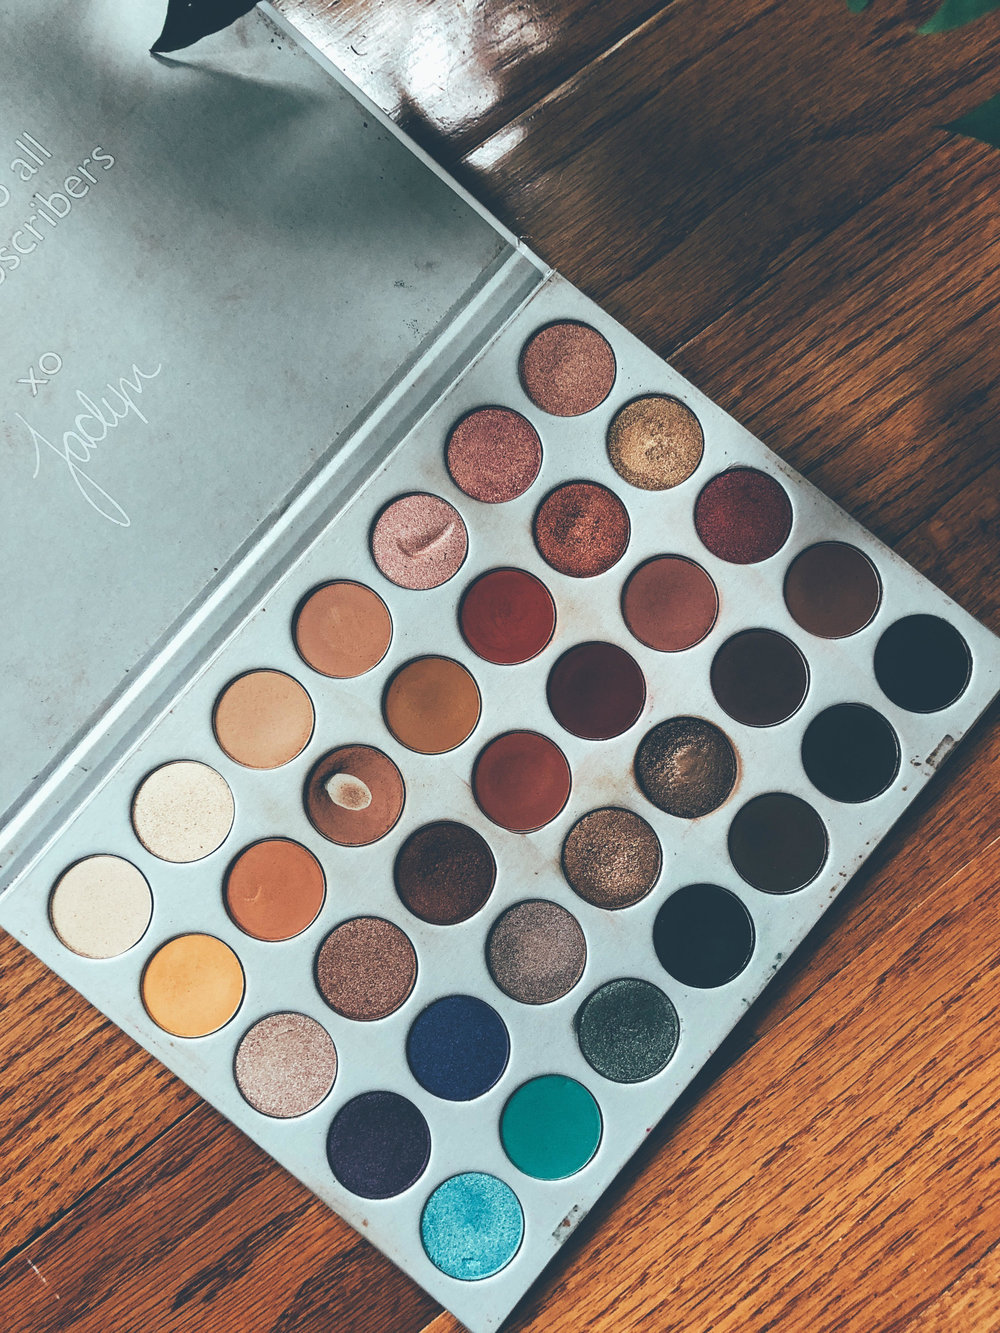 The Jaclyn Hill Palette...Yes...She has been loved...